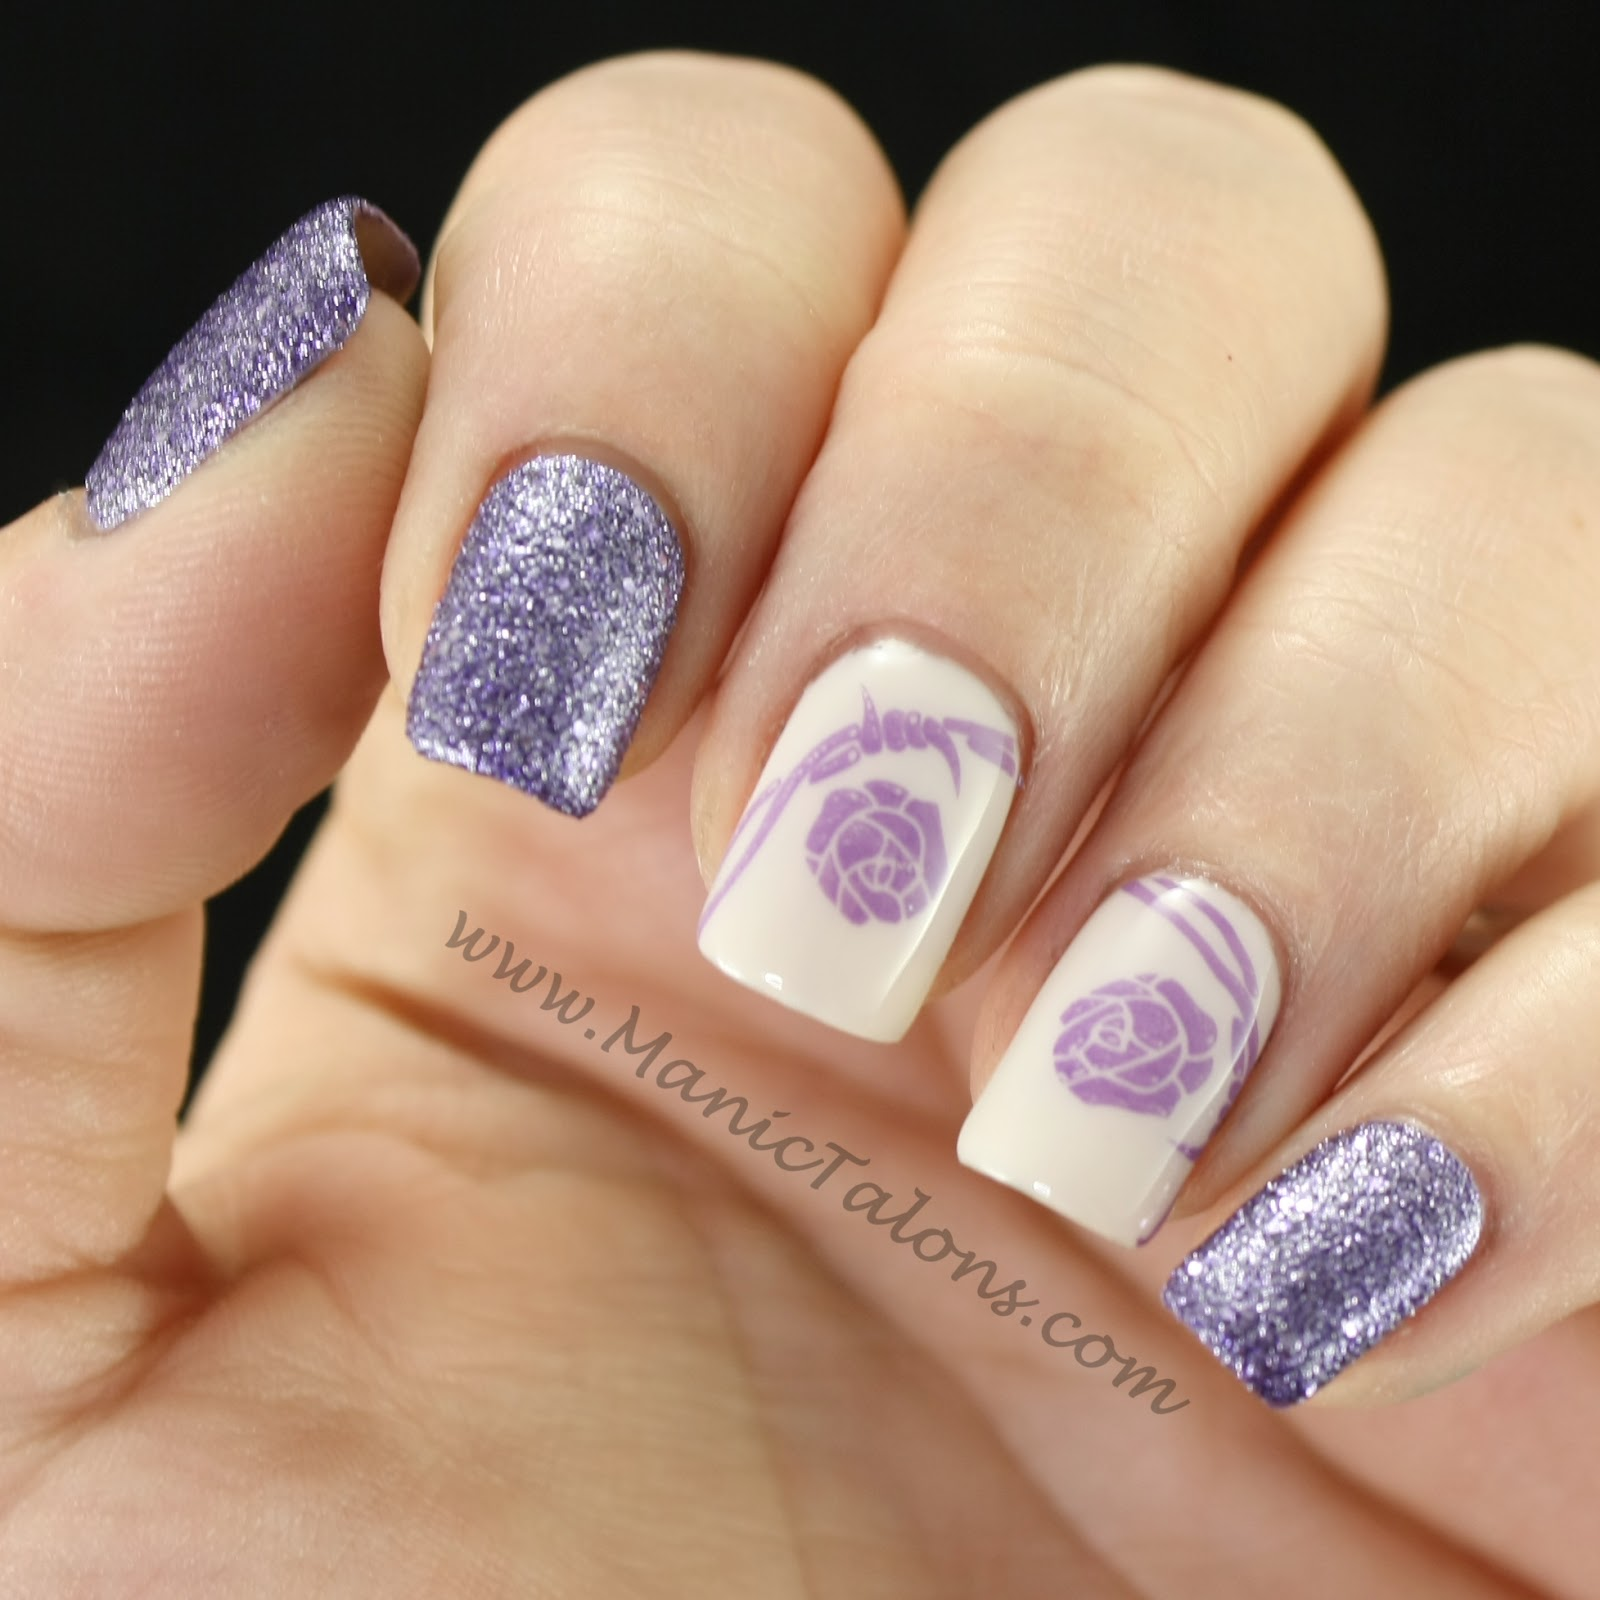 Textured Nail Art to Take Your Mani to Another Dimension